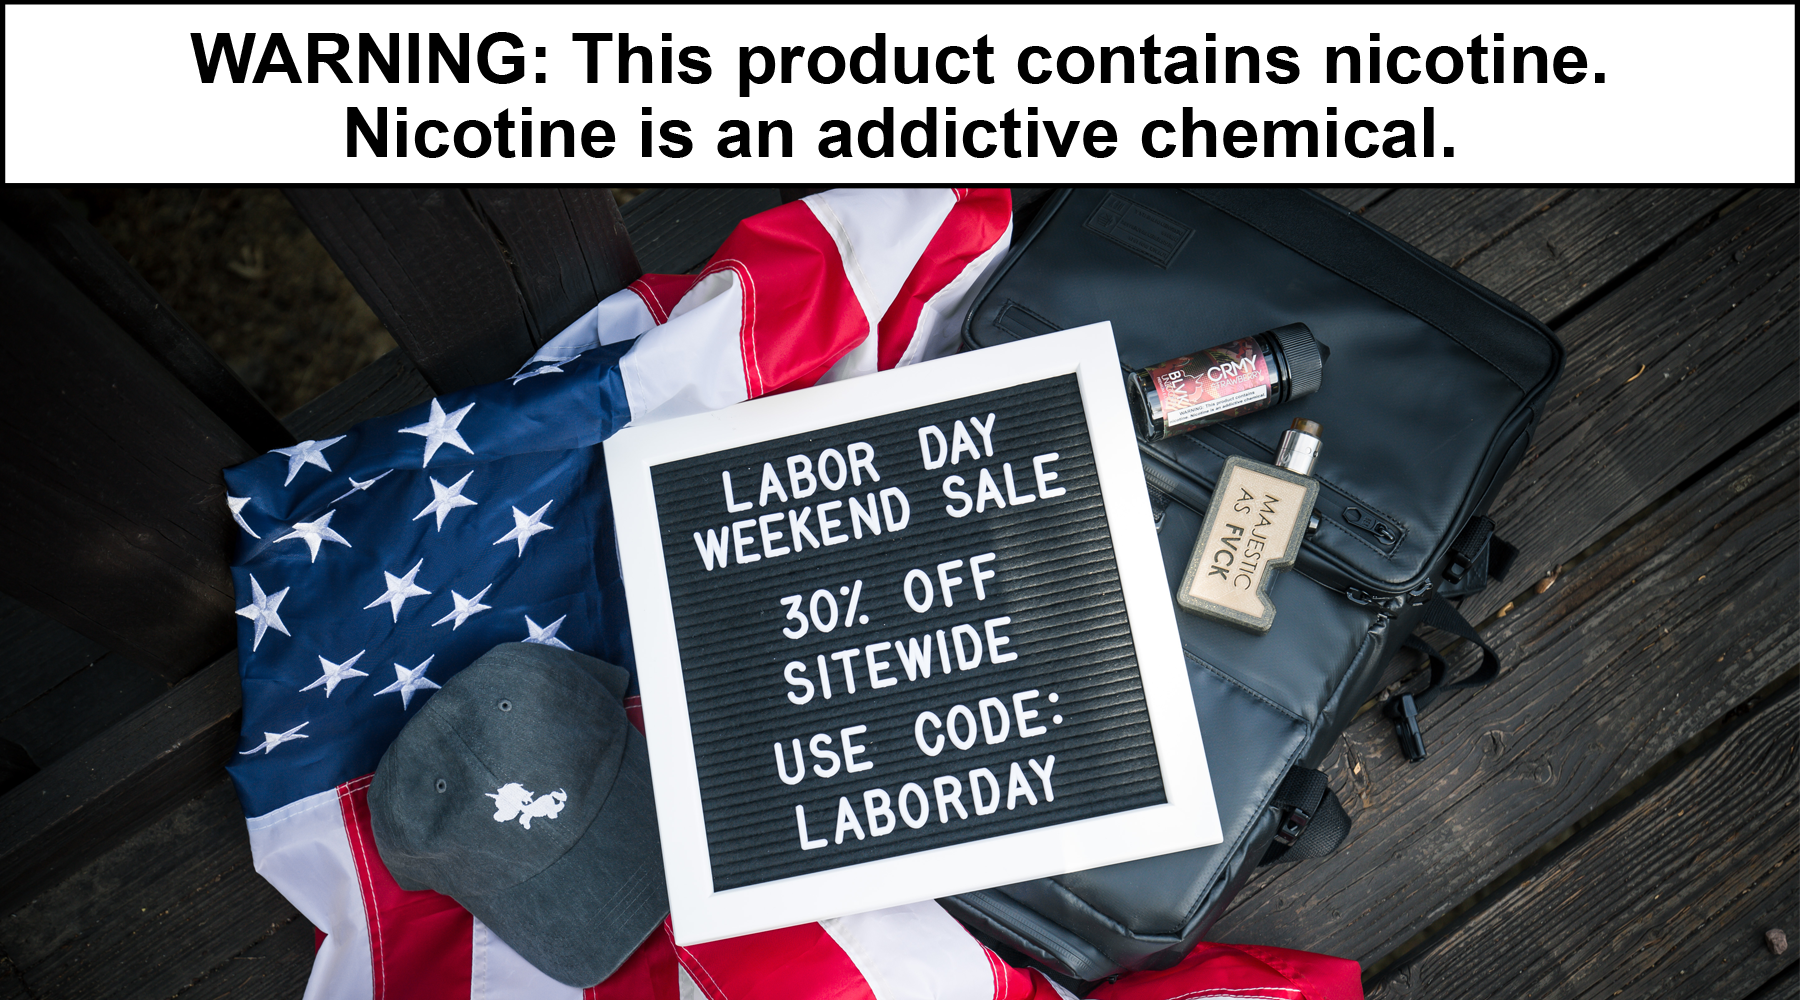 Stock Up and SAVE This Labor Day Weekend with BLVK Unicorn!